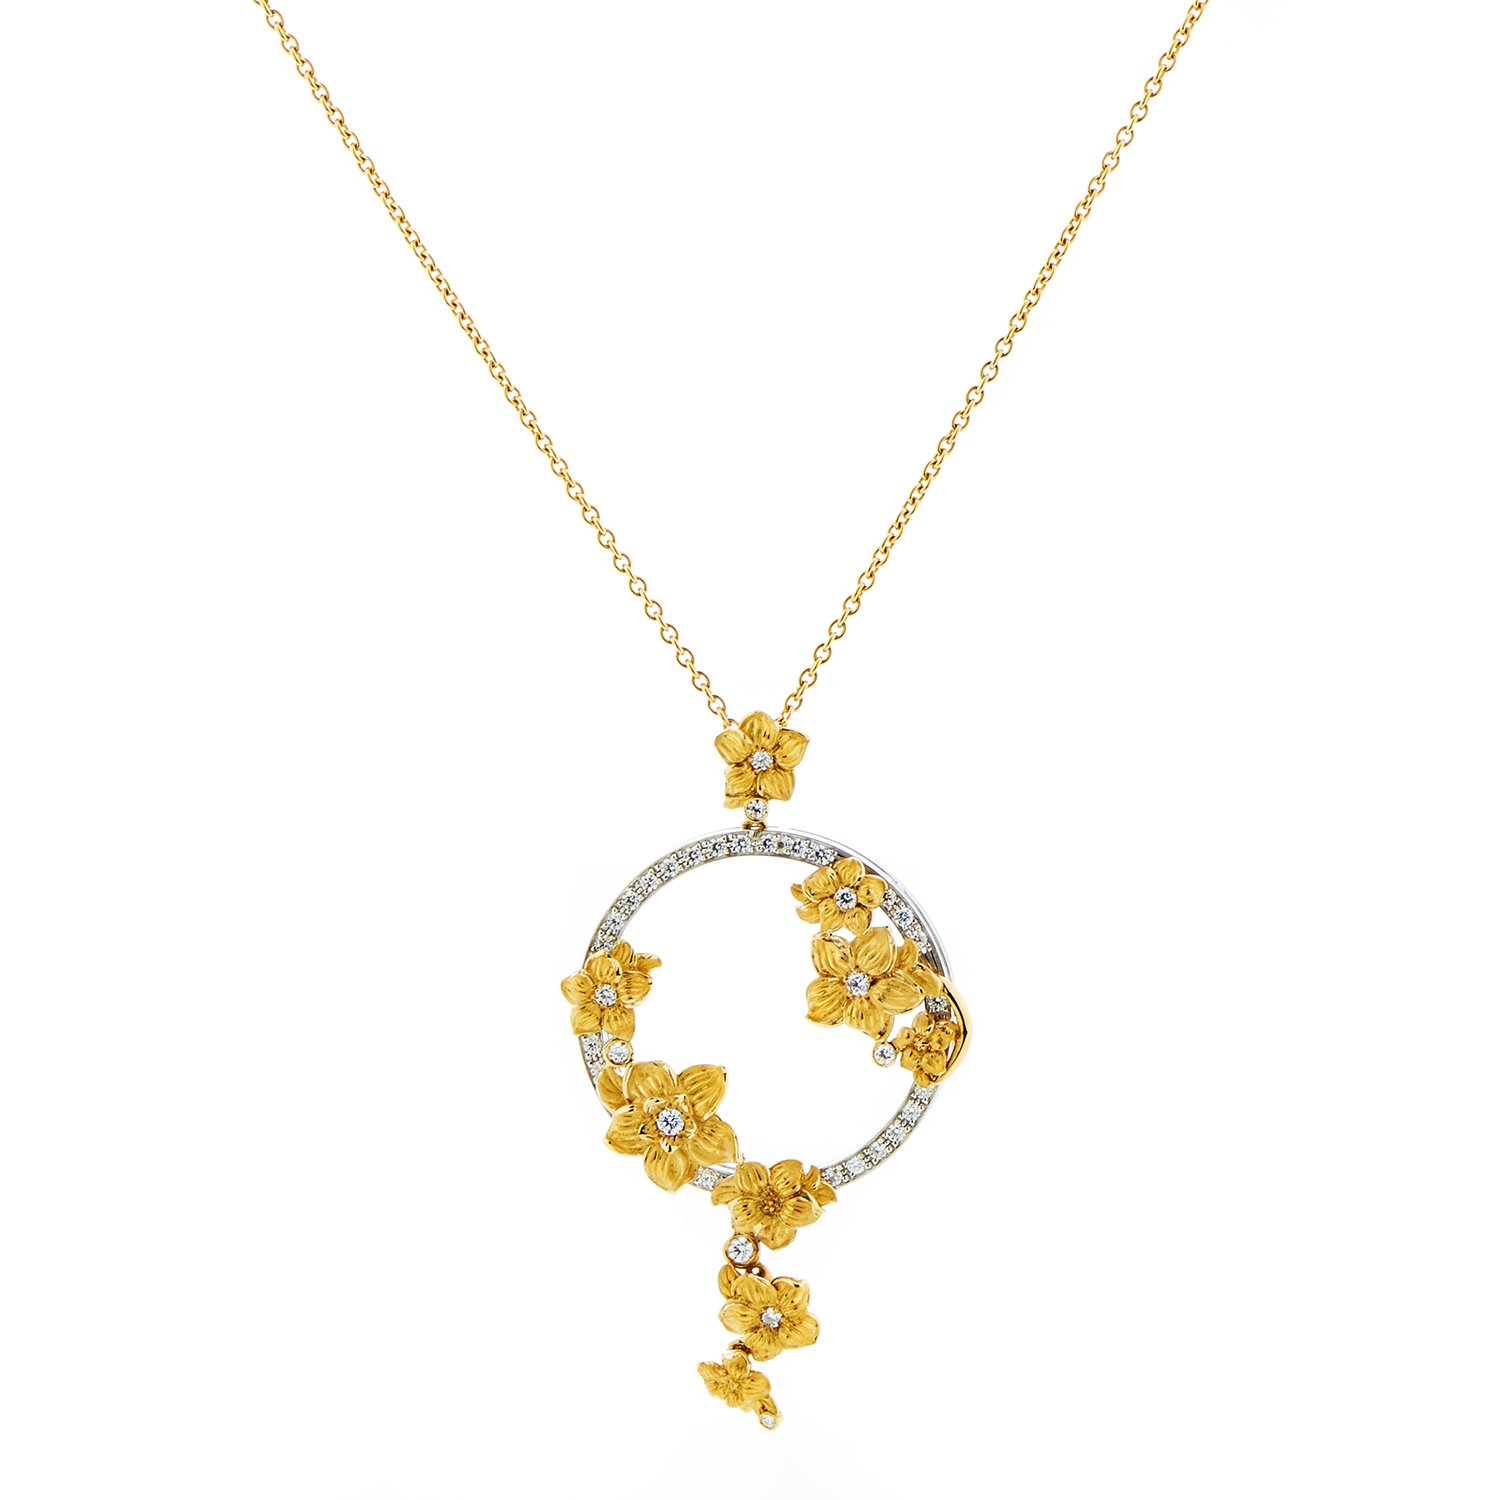 Emperatriz Bouquet Maxi 18K Gold Diamond Pendant Necklace